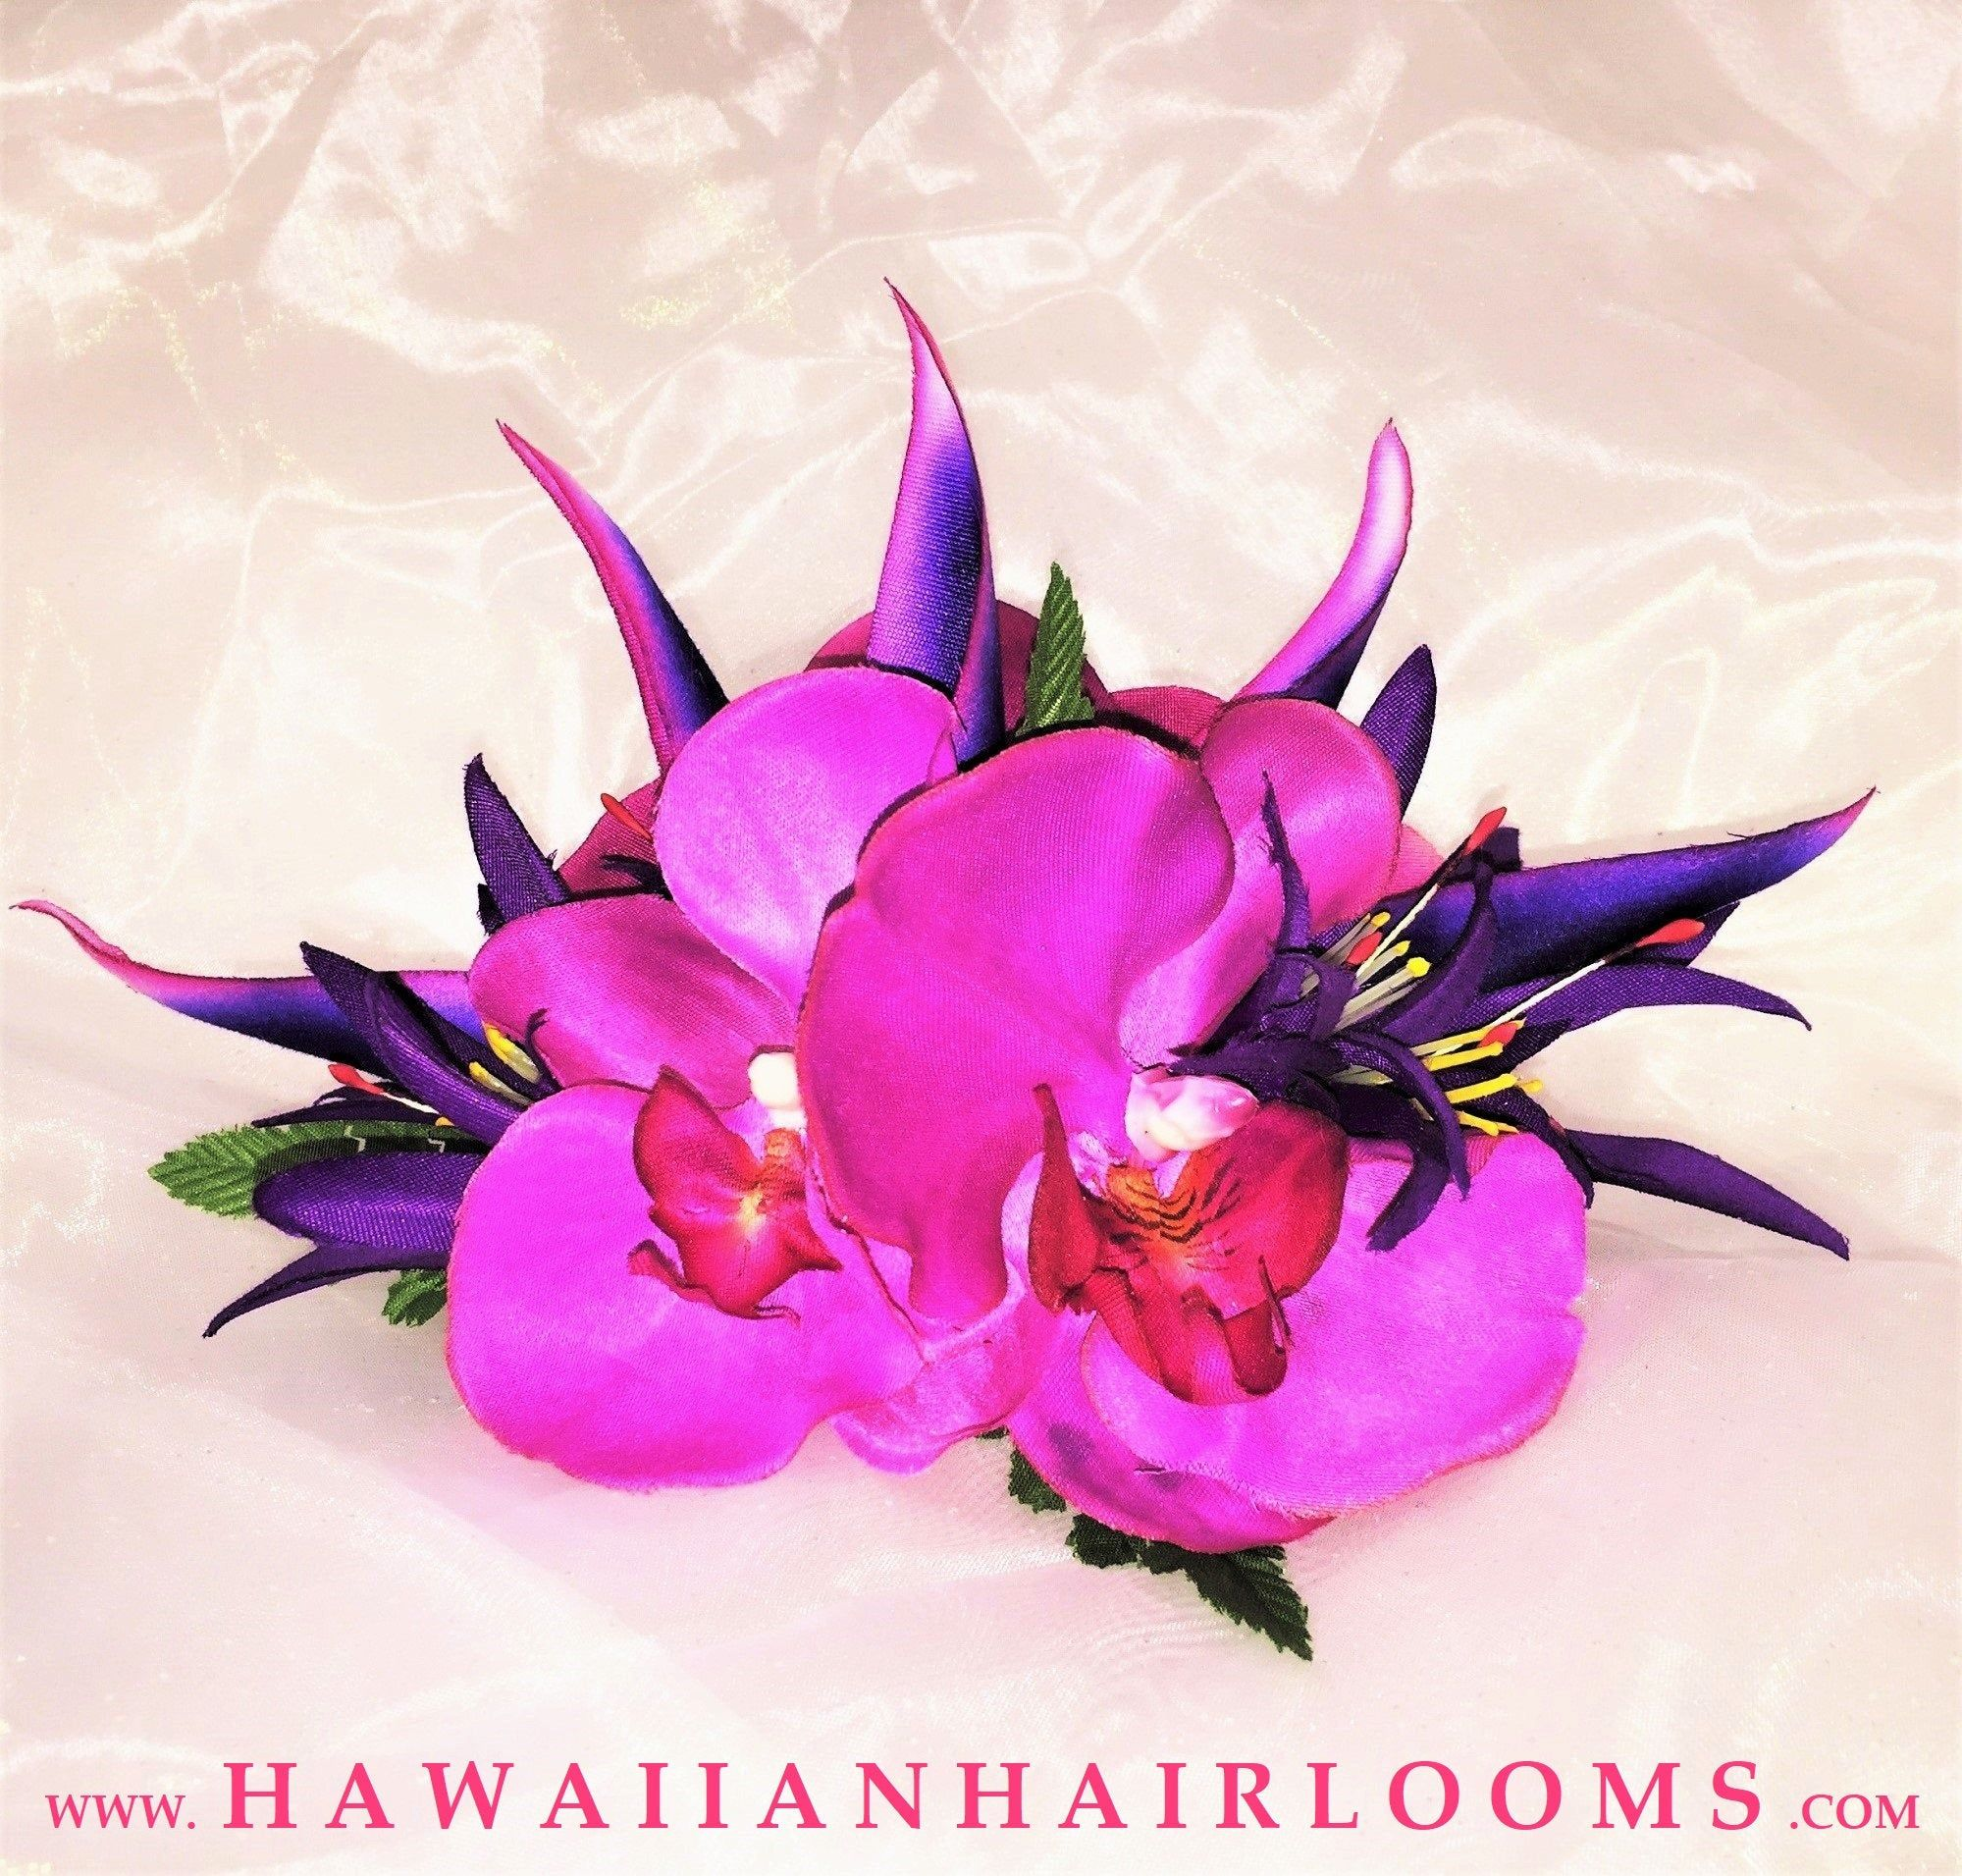 Celestial Blooms Hawaiian Flowers Hair Clip Silk Orchids Purple Jewel Colors Hula Flowers Pinups Hair Weddin In 2020 Silk Orchids Hawaiian Flowers Hawaiian Flower Hair